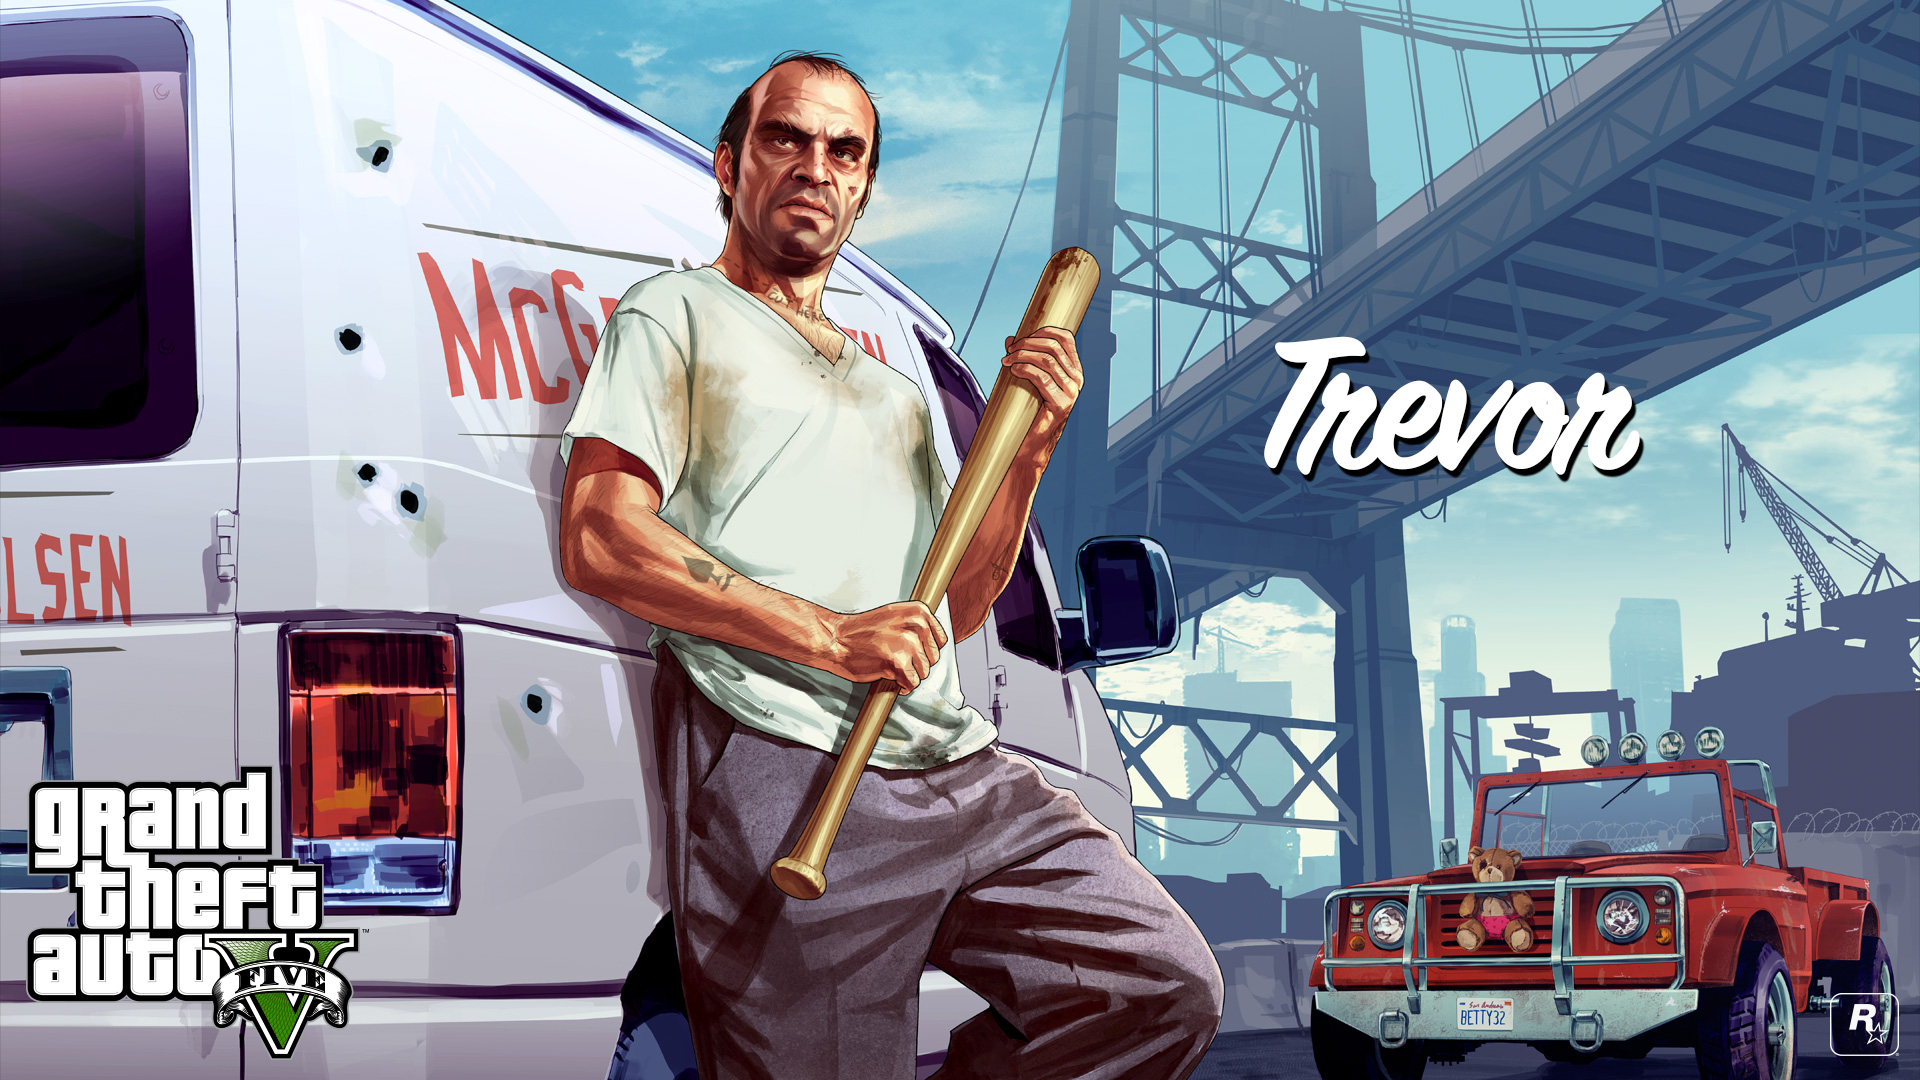 GTA Vs Michael Franklin And Trevor Get The HD Wallpaper Treatment 1920x1080